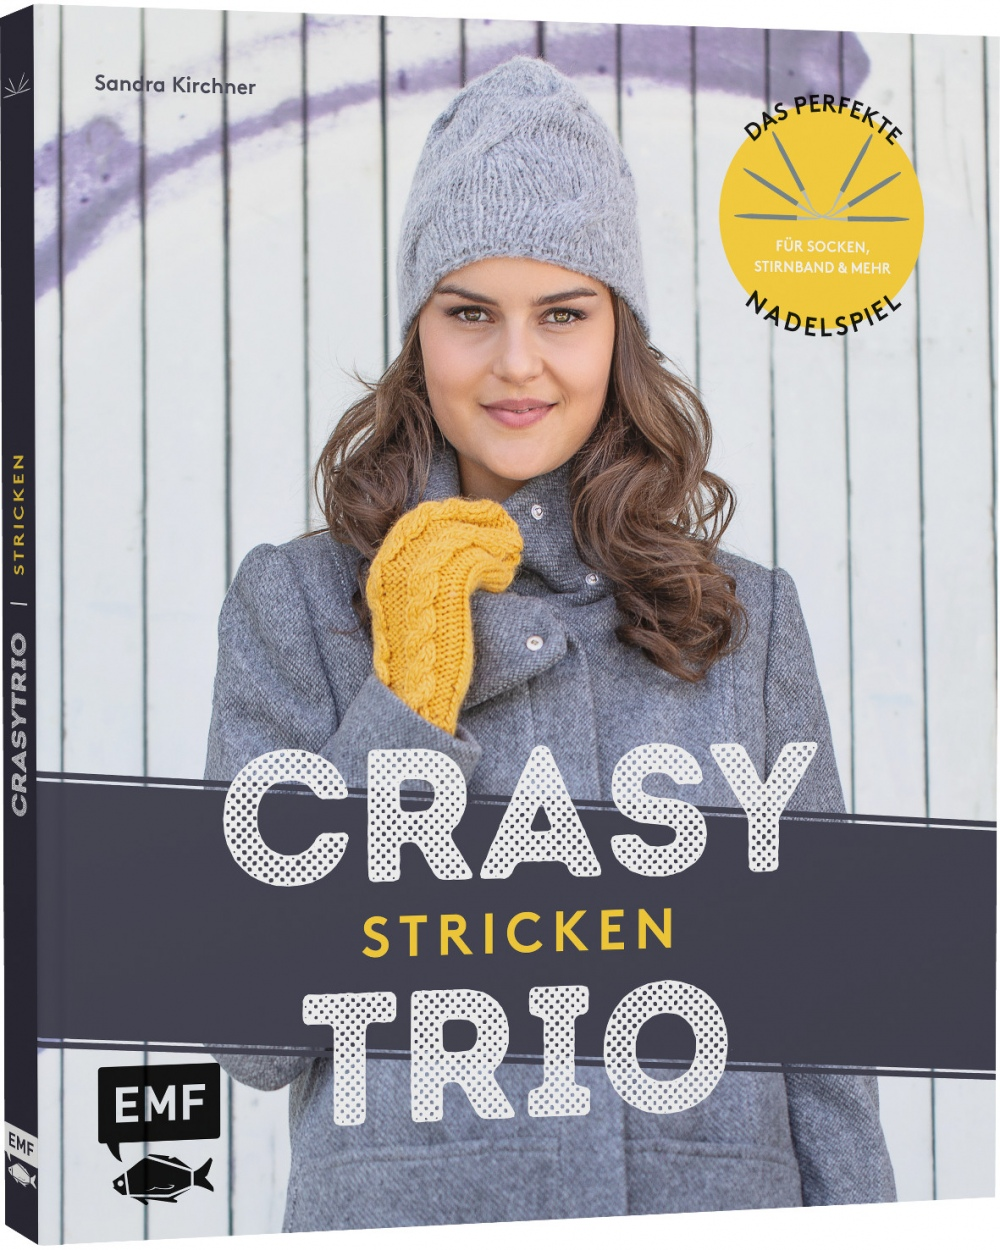 Buch: CraSyTrio Stricken